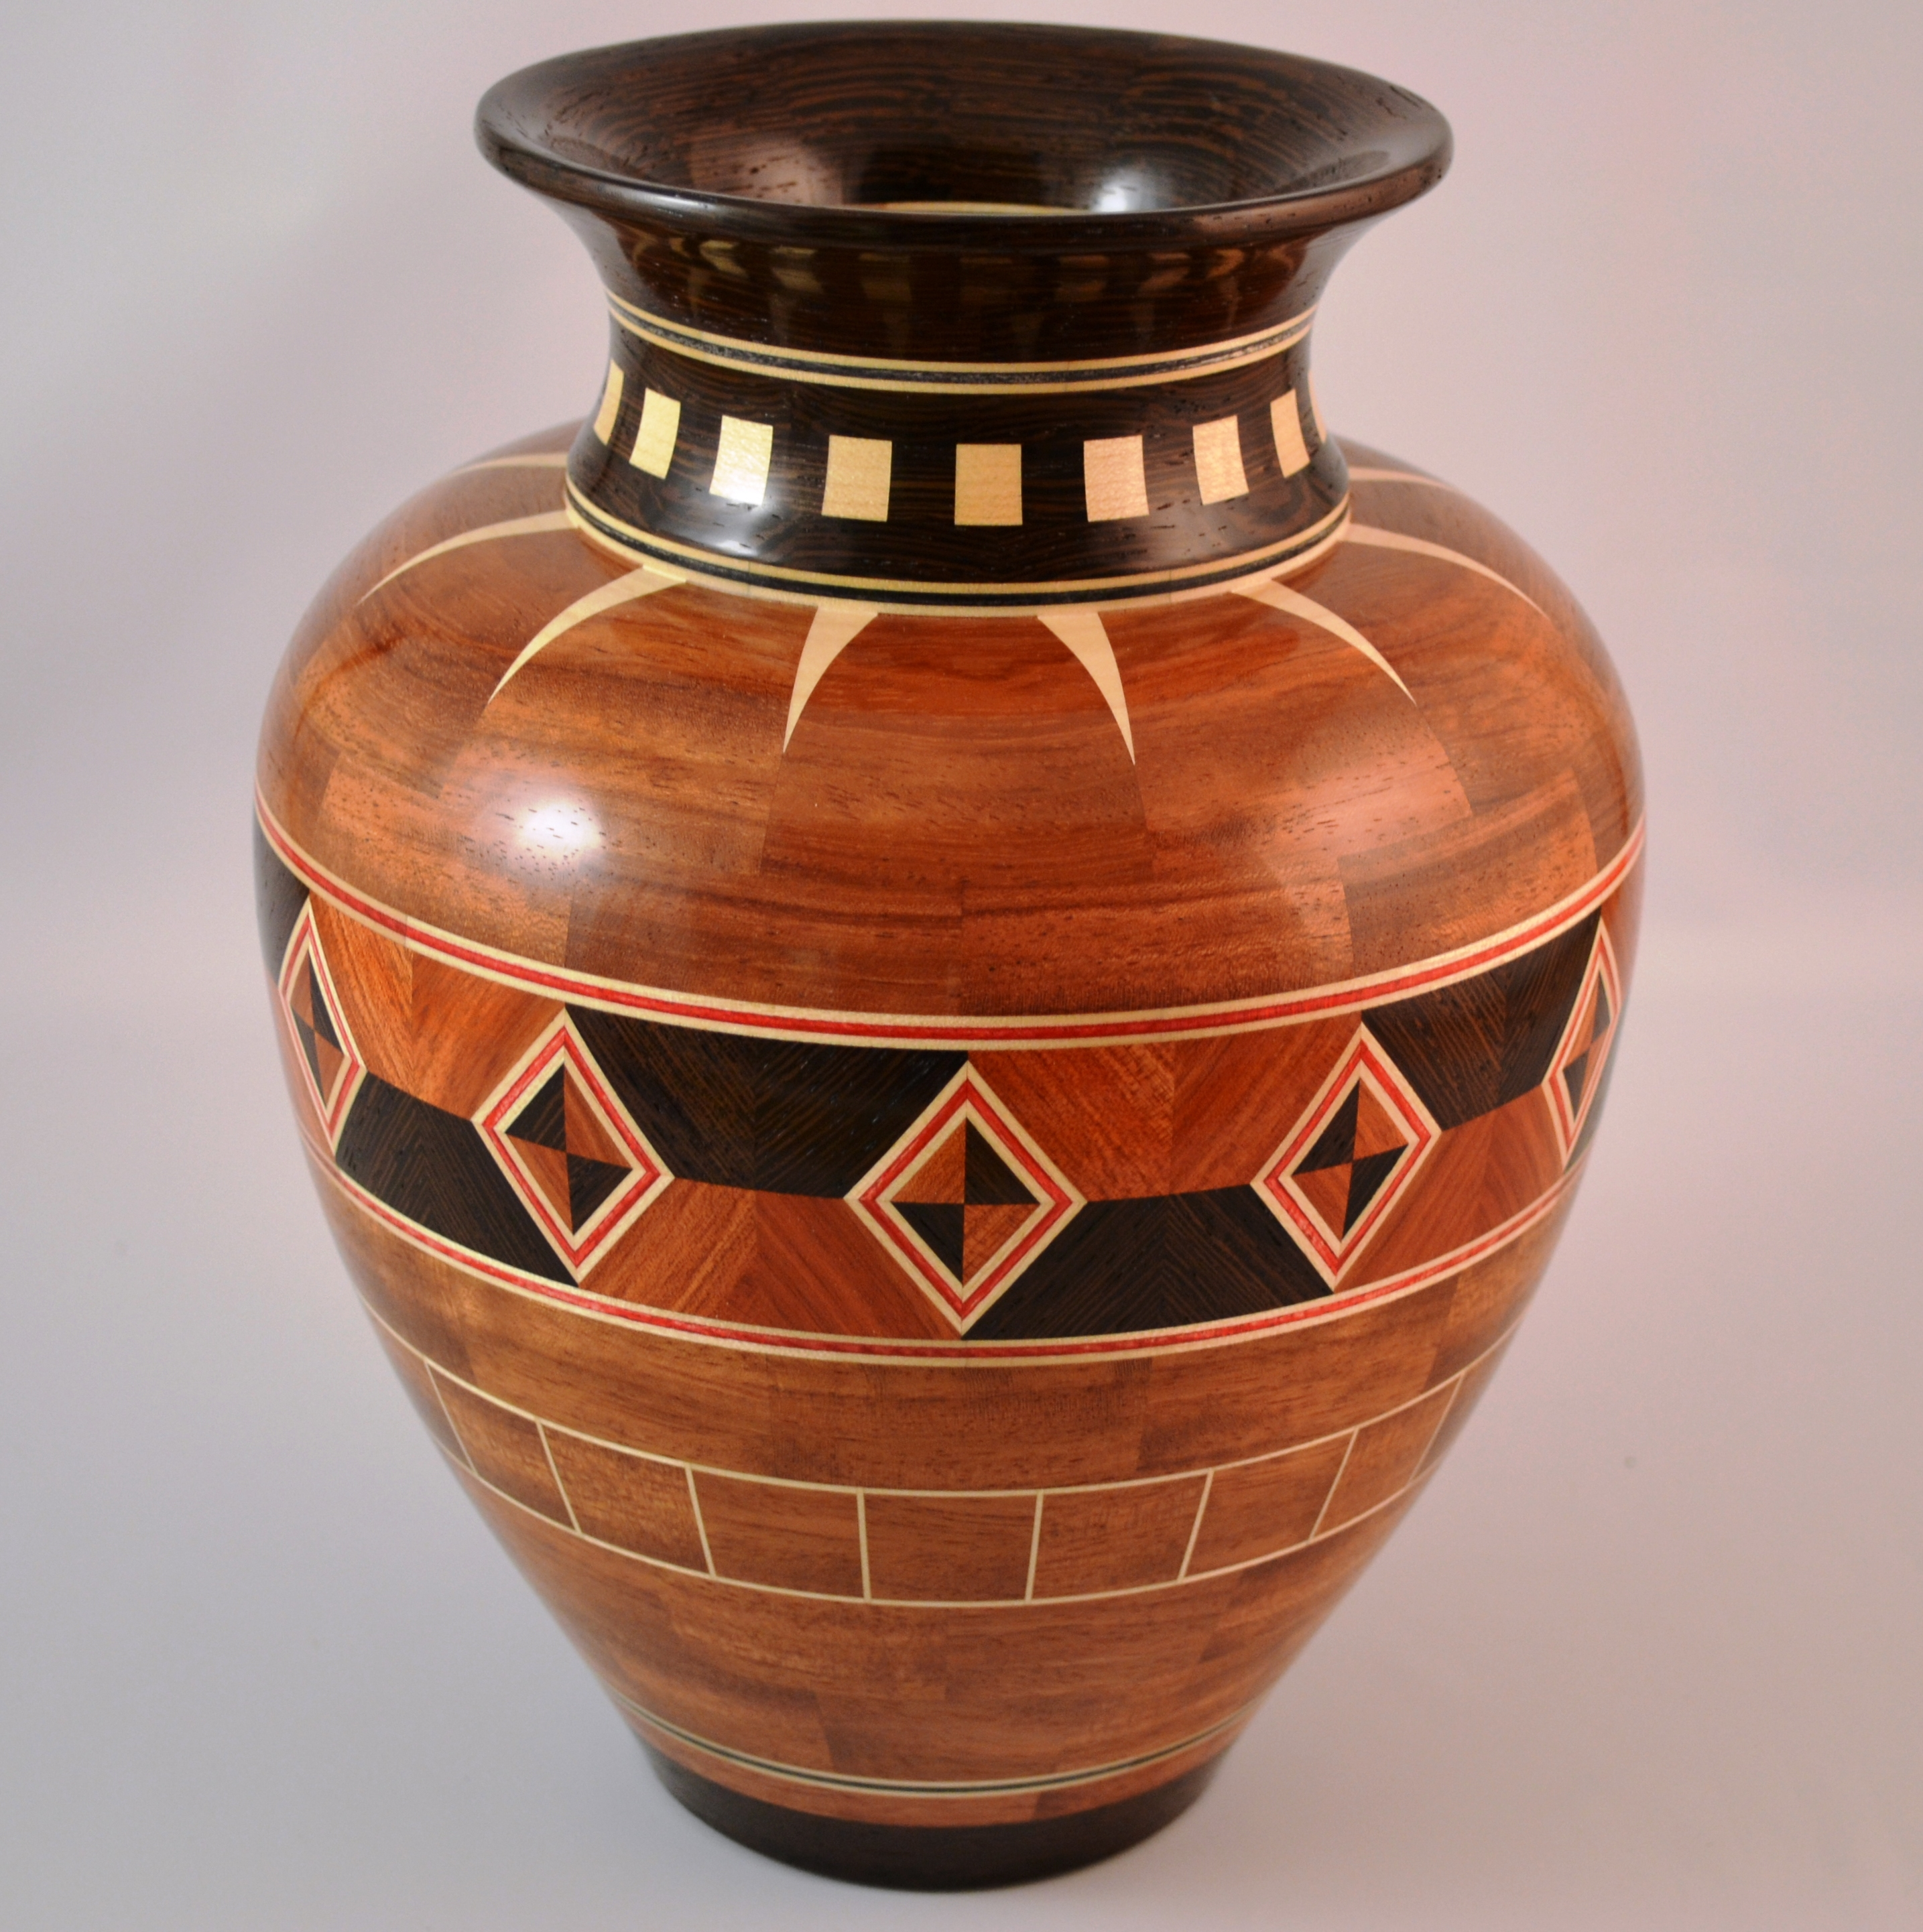 "Vase with Diamonds – 8-1/4"" diameter X 9-1/2"" tall – woods used: Bubinga, Wenge, Maple and dyed veneers – 571 pieces of wood"